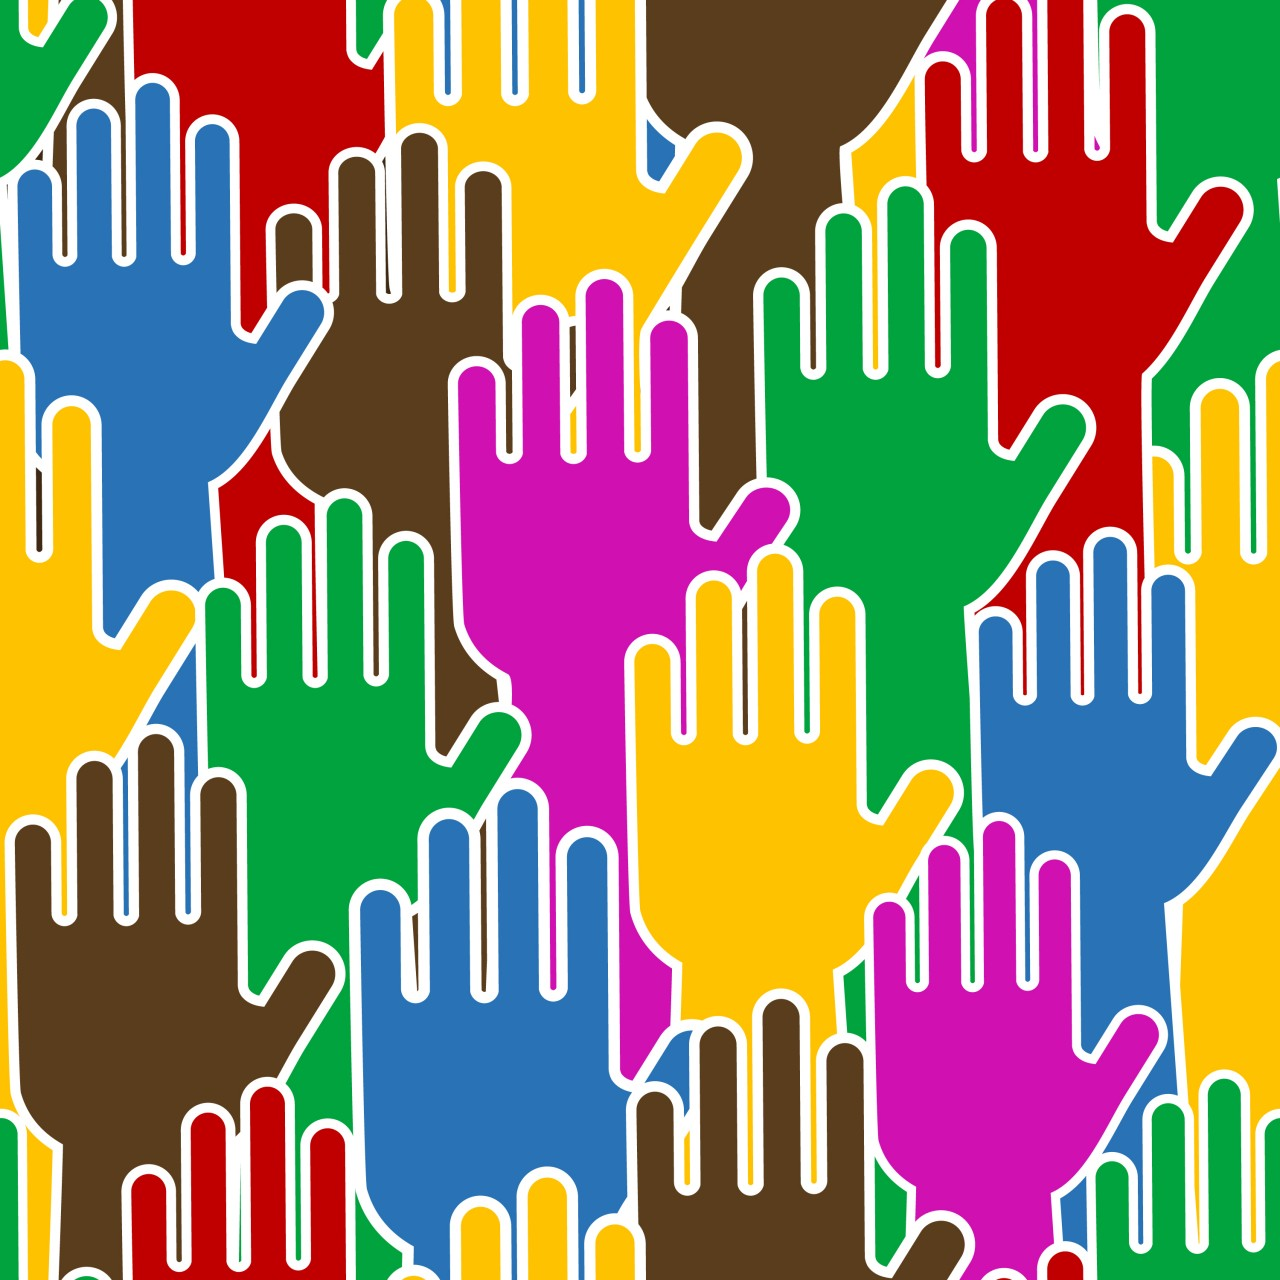 DIVERSITY AND INCLUSION IN THE WORKPLACE WILL IMPROVE YOUR ROI